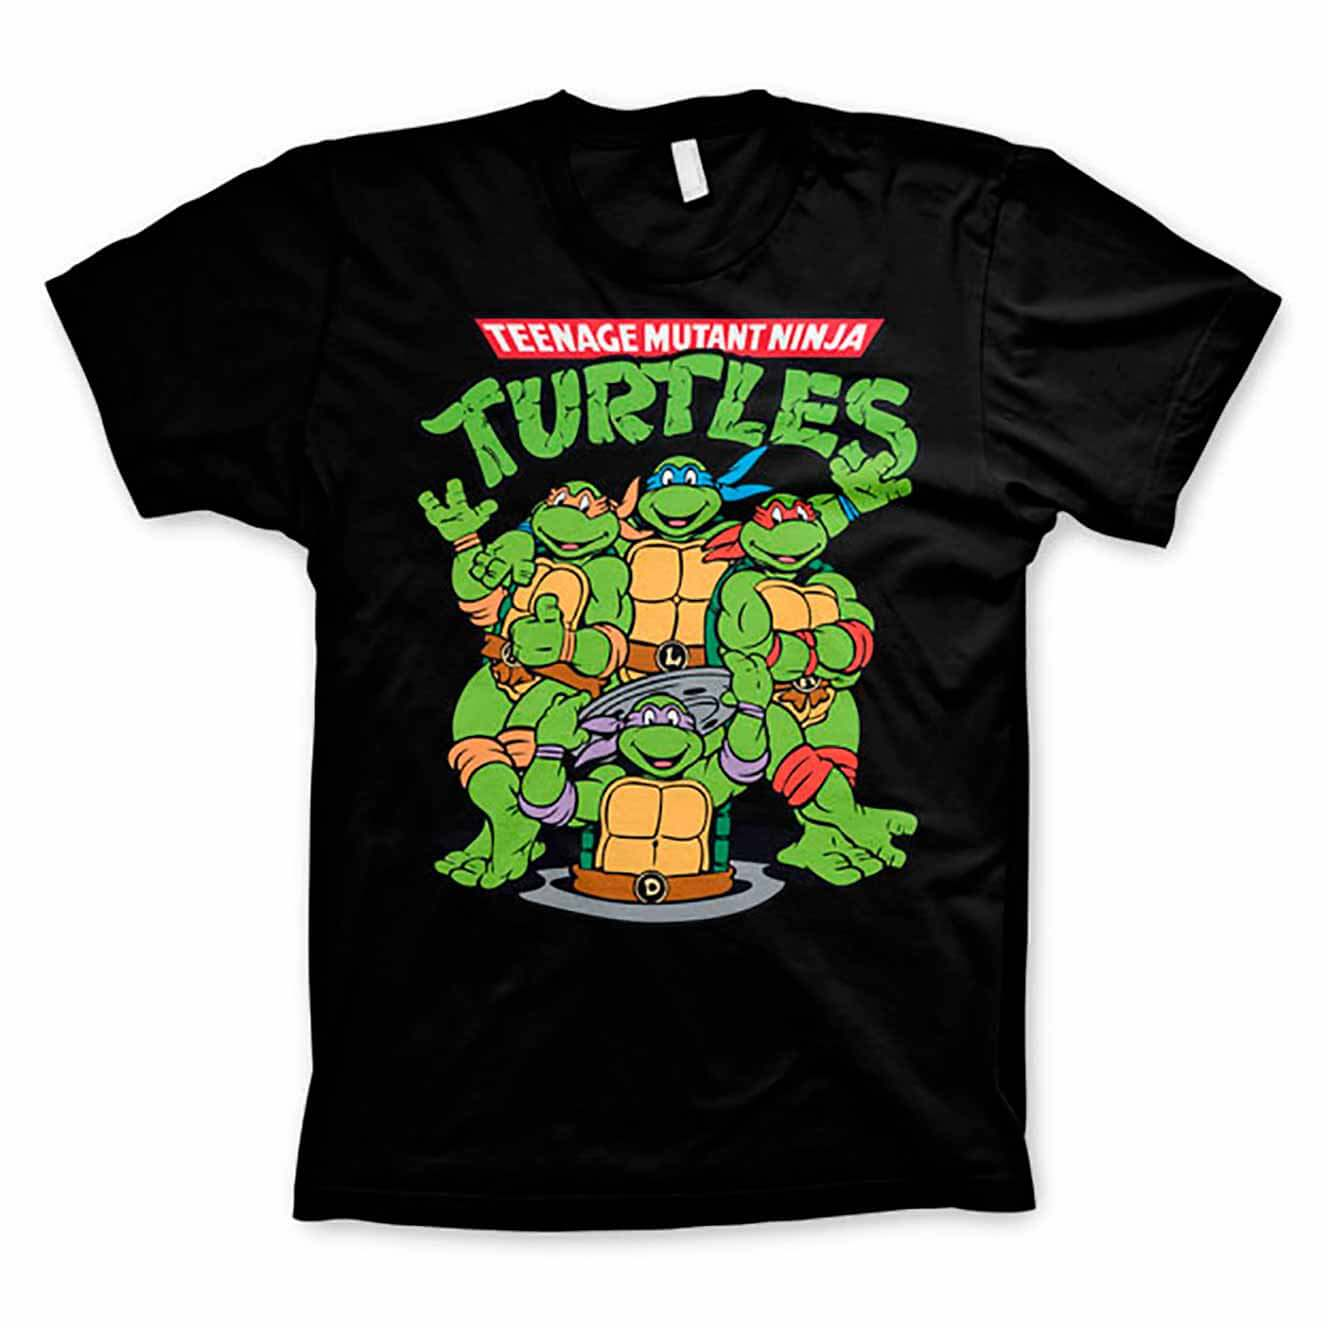 Turtles group T-shirt